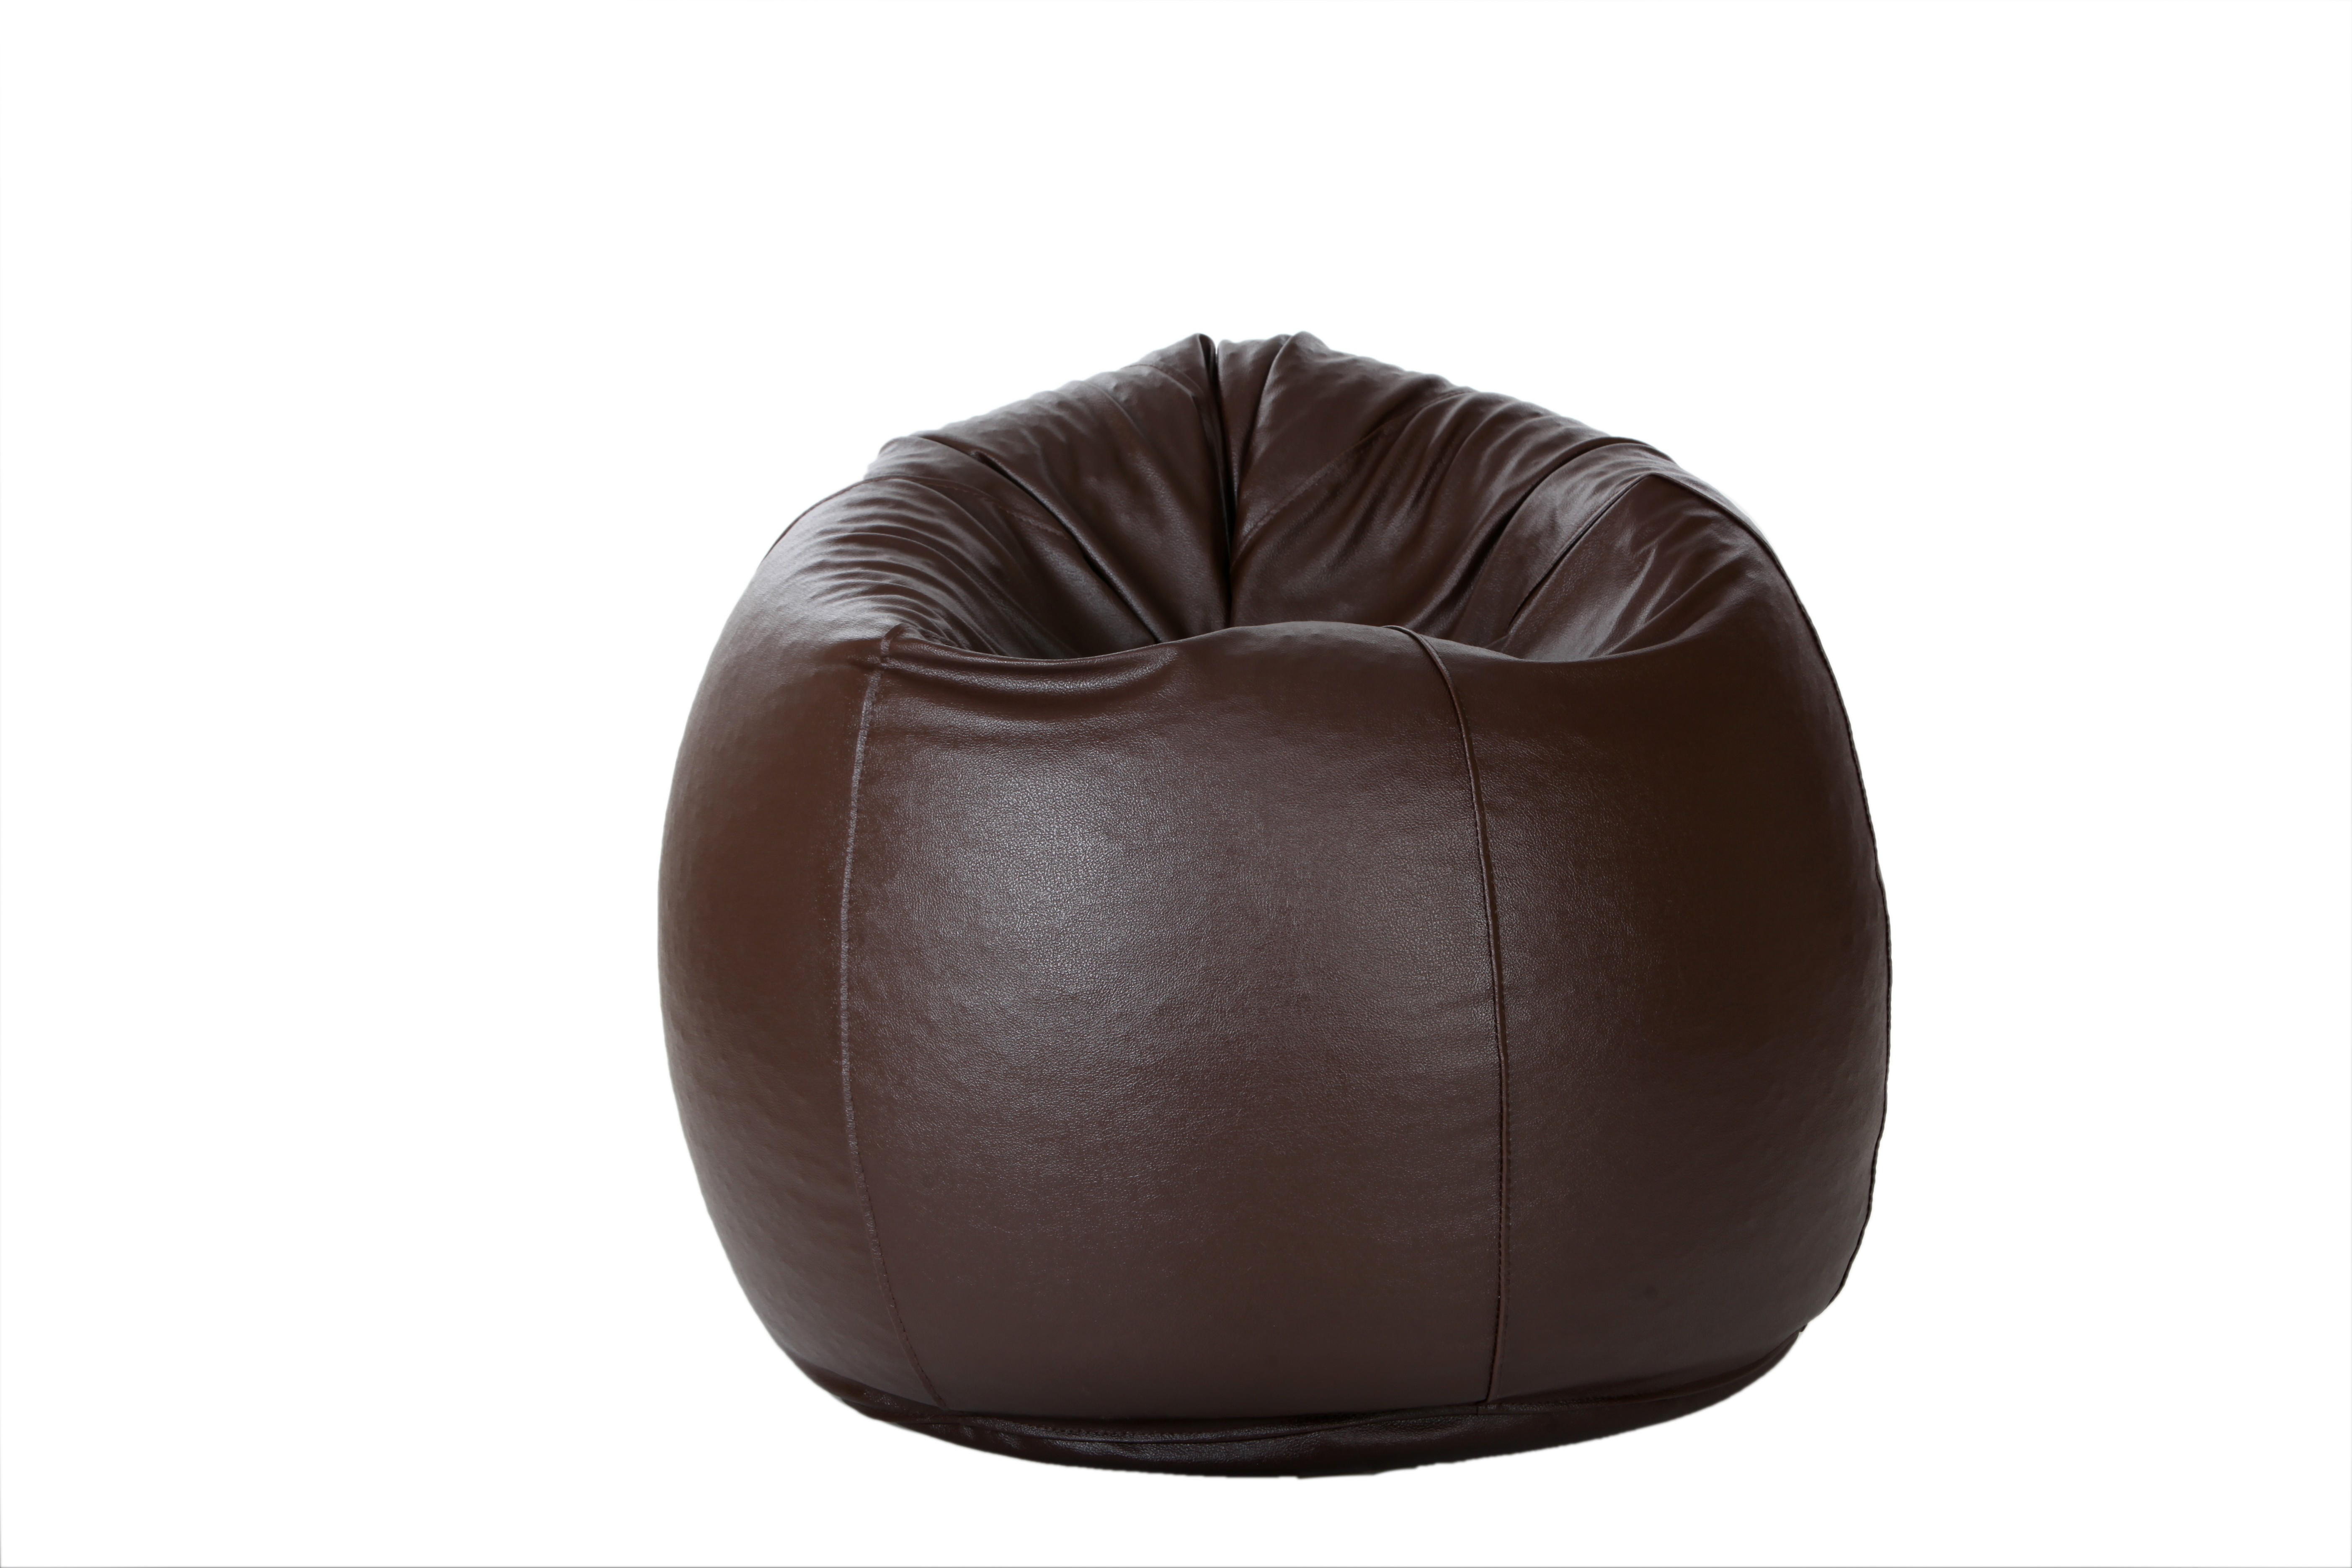 View Comfy Bean Bags XXL Bean Bag Cover(Brown) Furniture (Comfy Bean Bags)